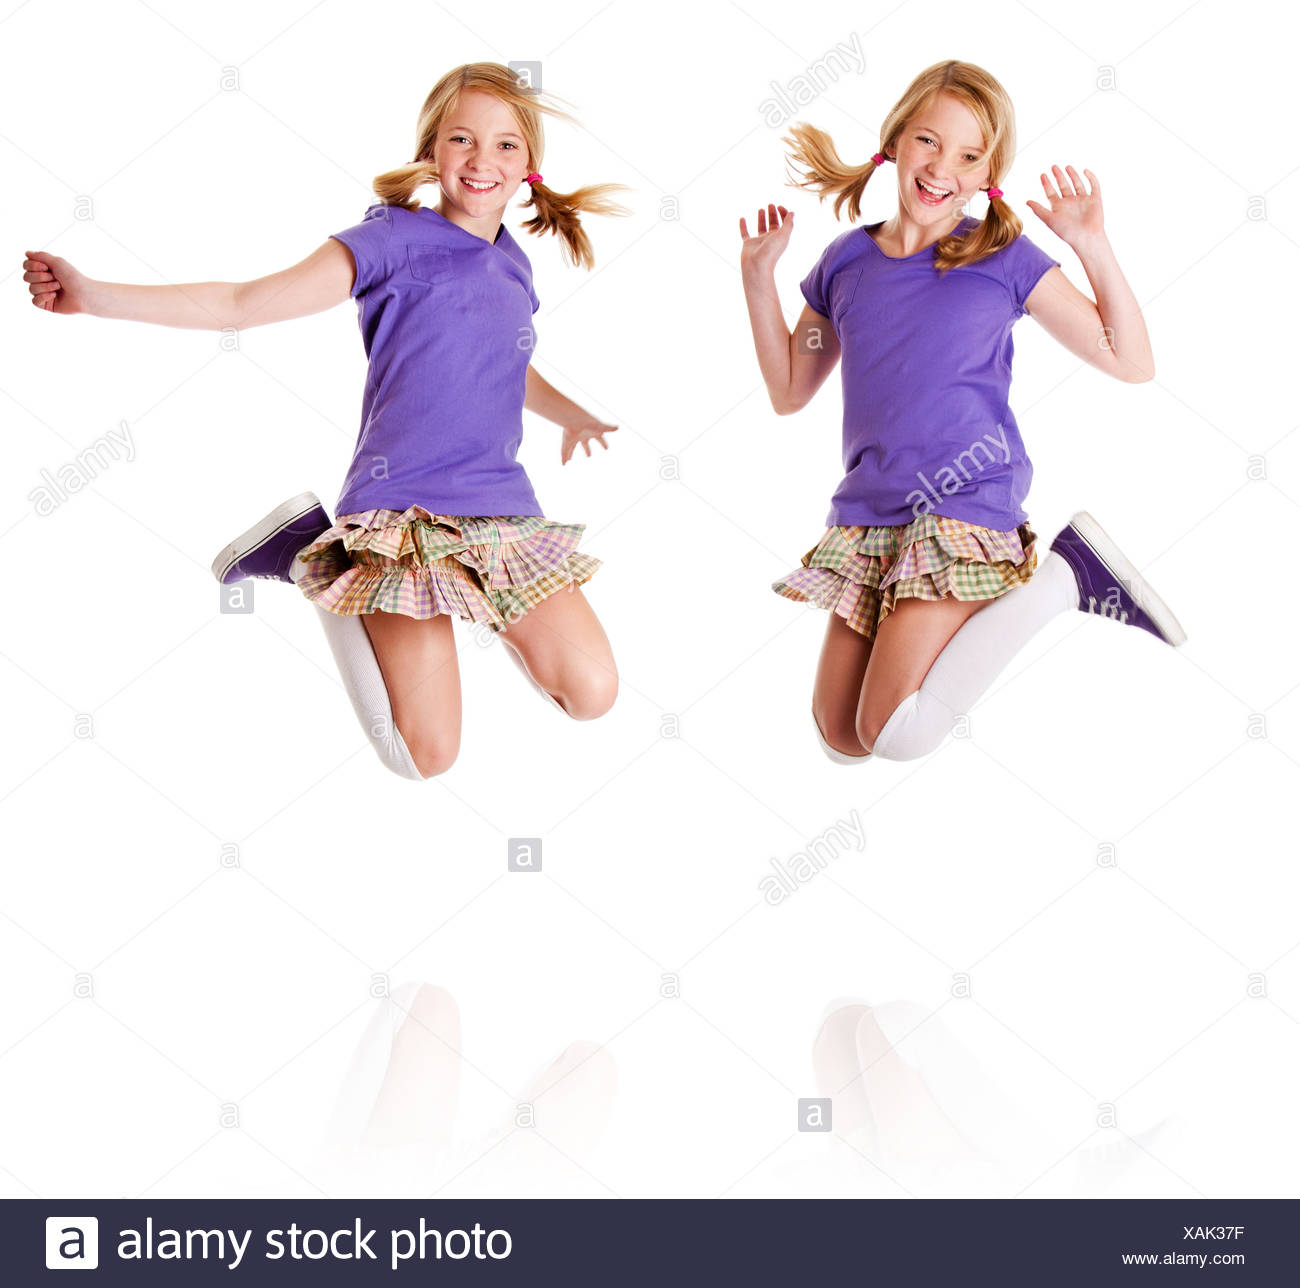 Happy teenager girls identical twins jumping and laughing of happiness having fun, isolated. - Stock Image